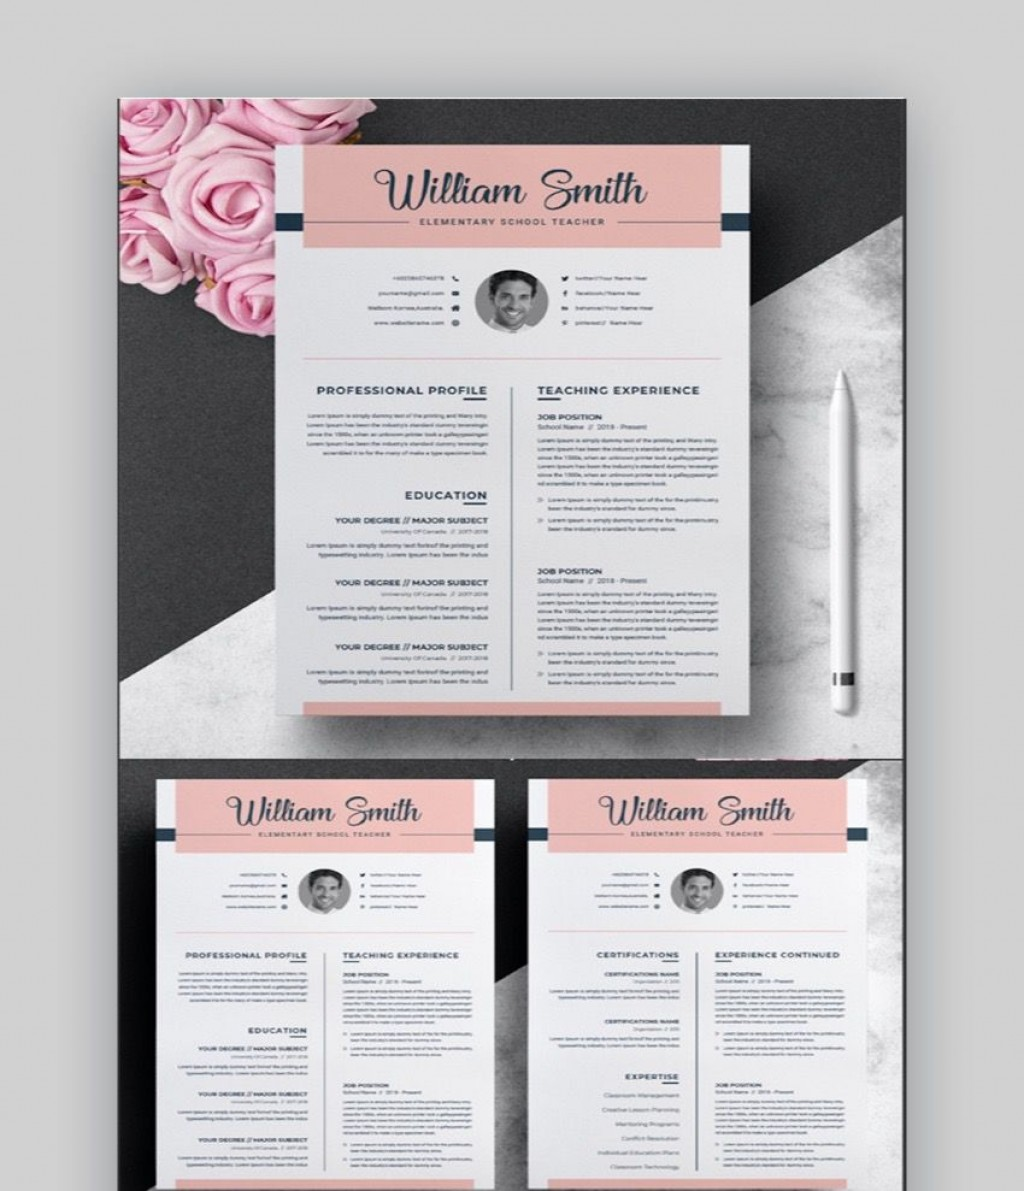 008 Breathtaking Teacher Resume Template Free Highest Clarity  Cv Word Download Editable Format DocLarge